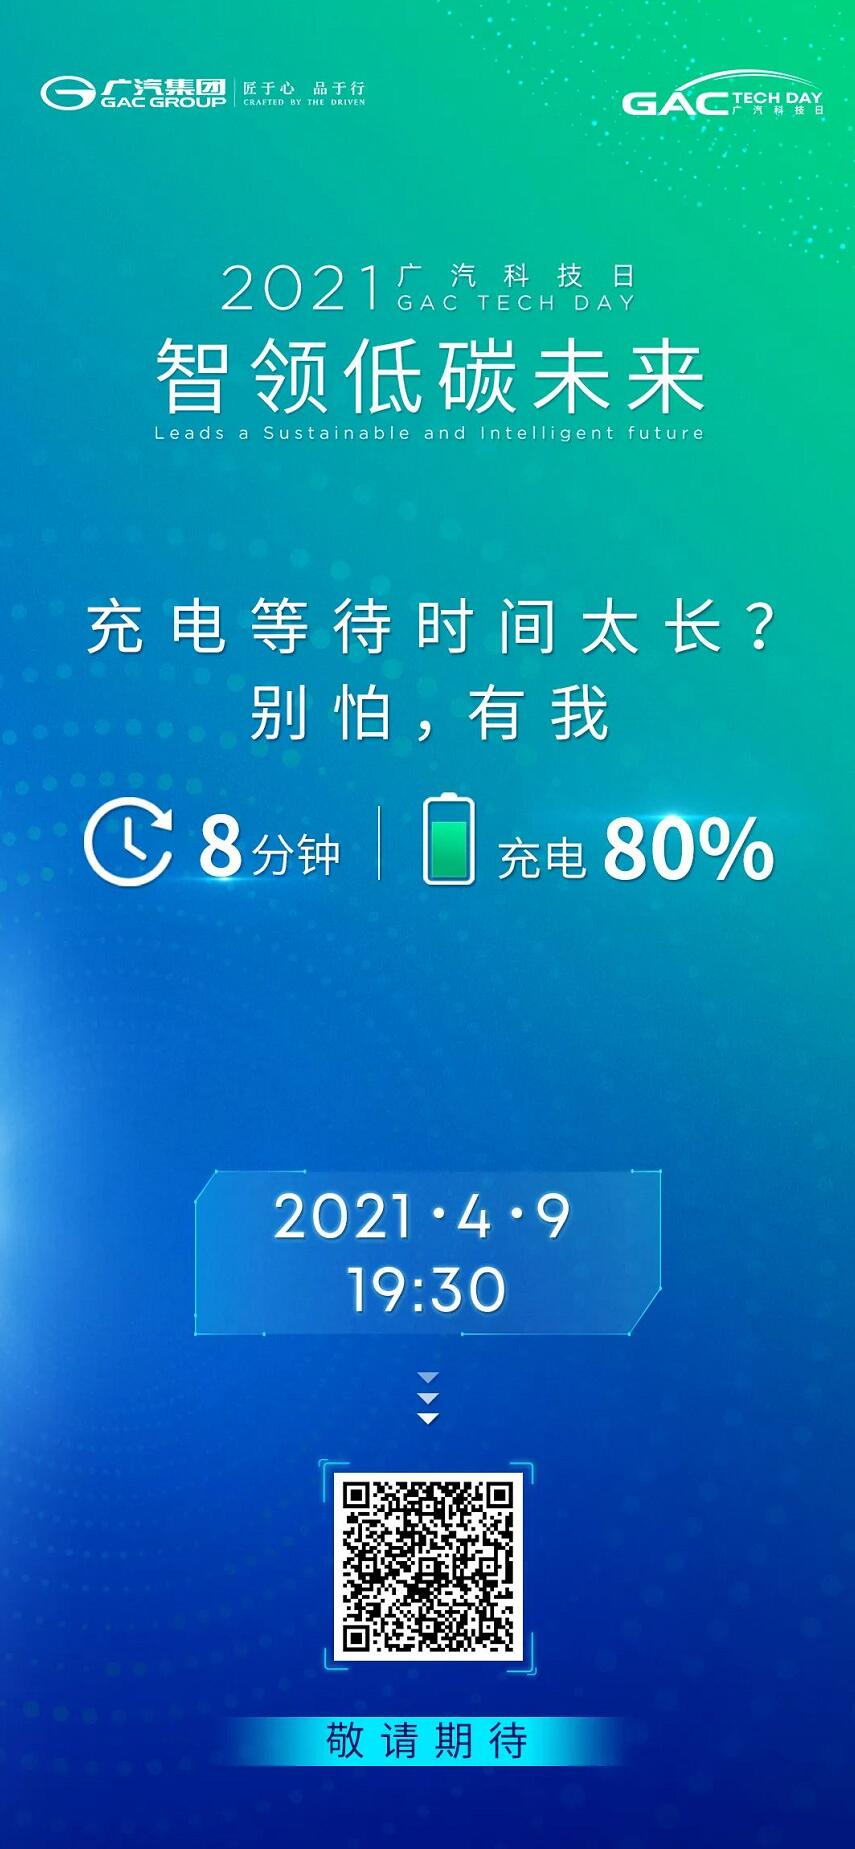 GAC expected to unveil battery technology with range of up to 1,000km on Friday-CnEVPost